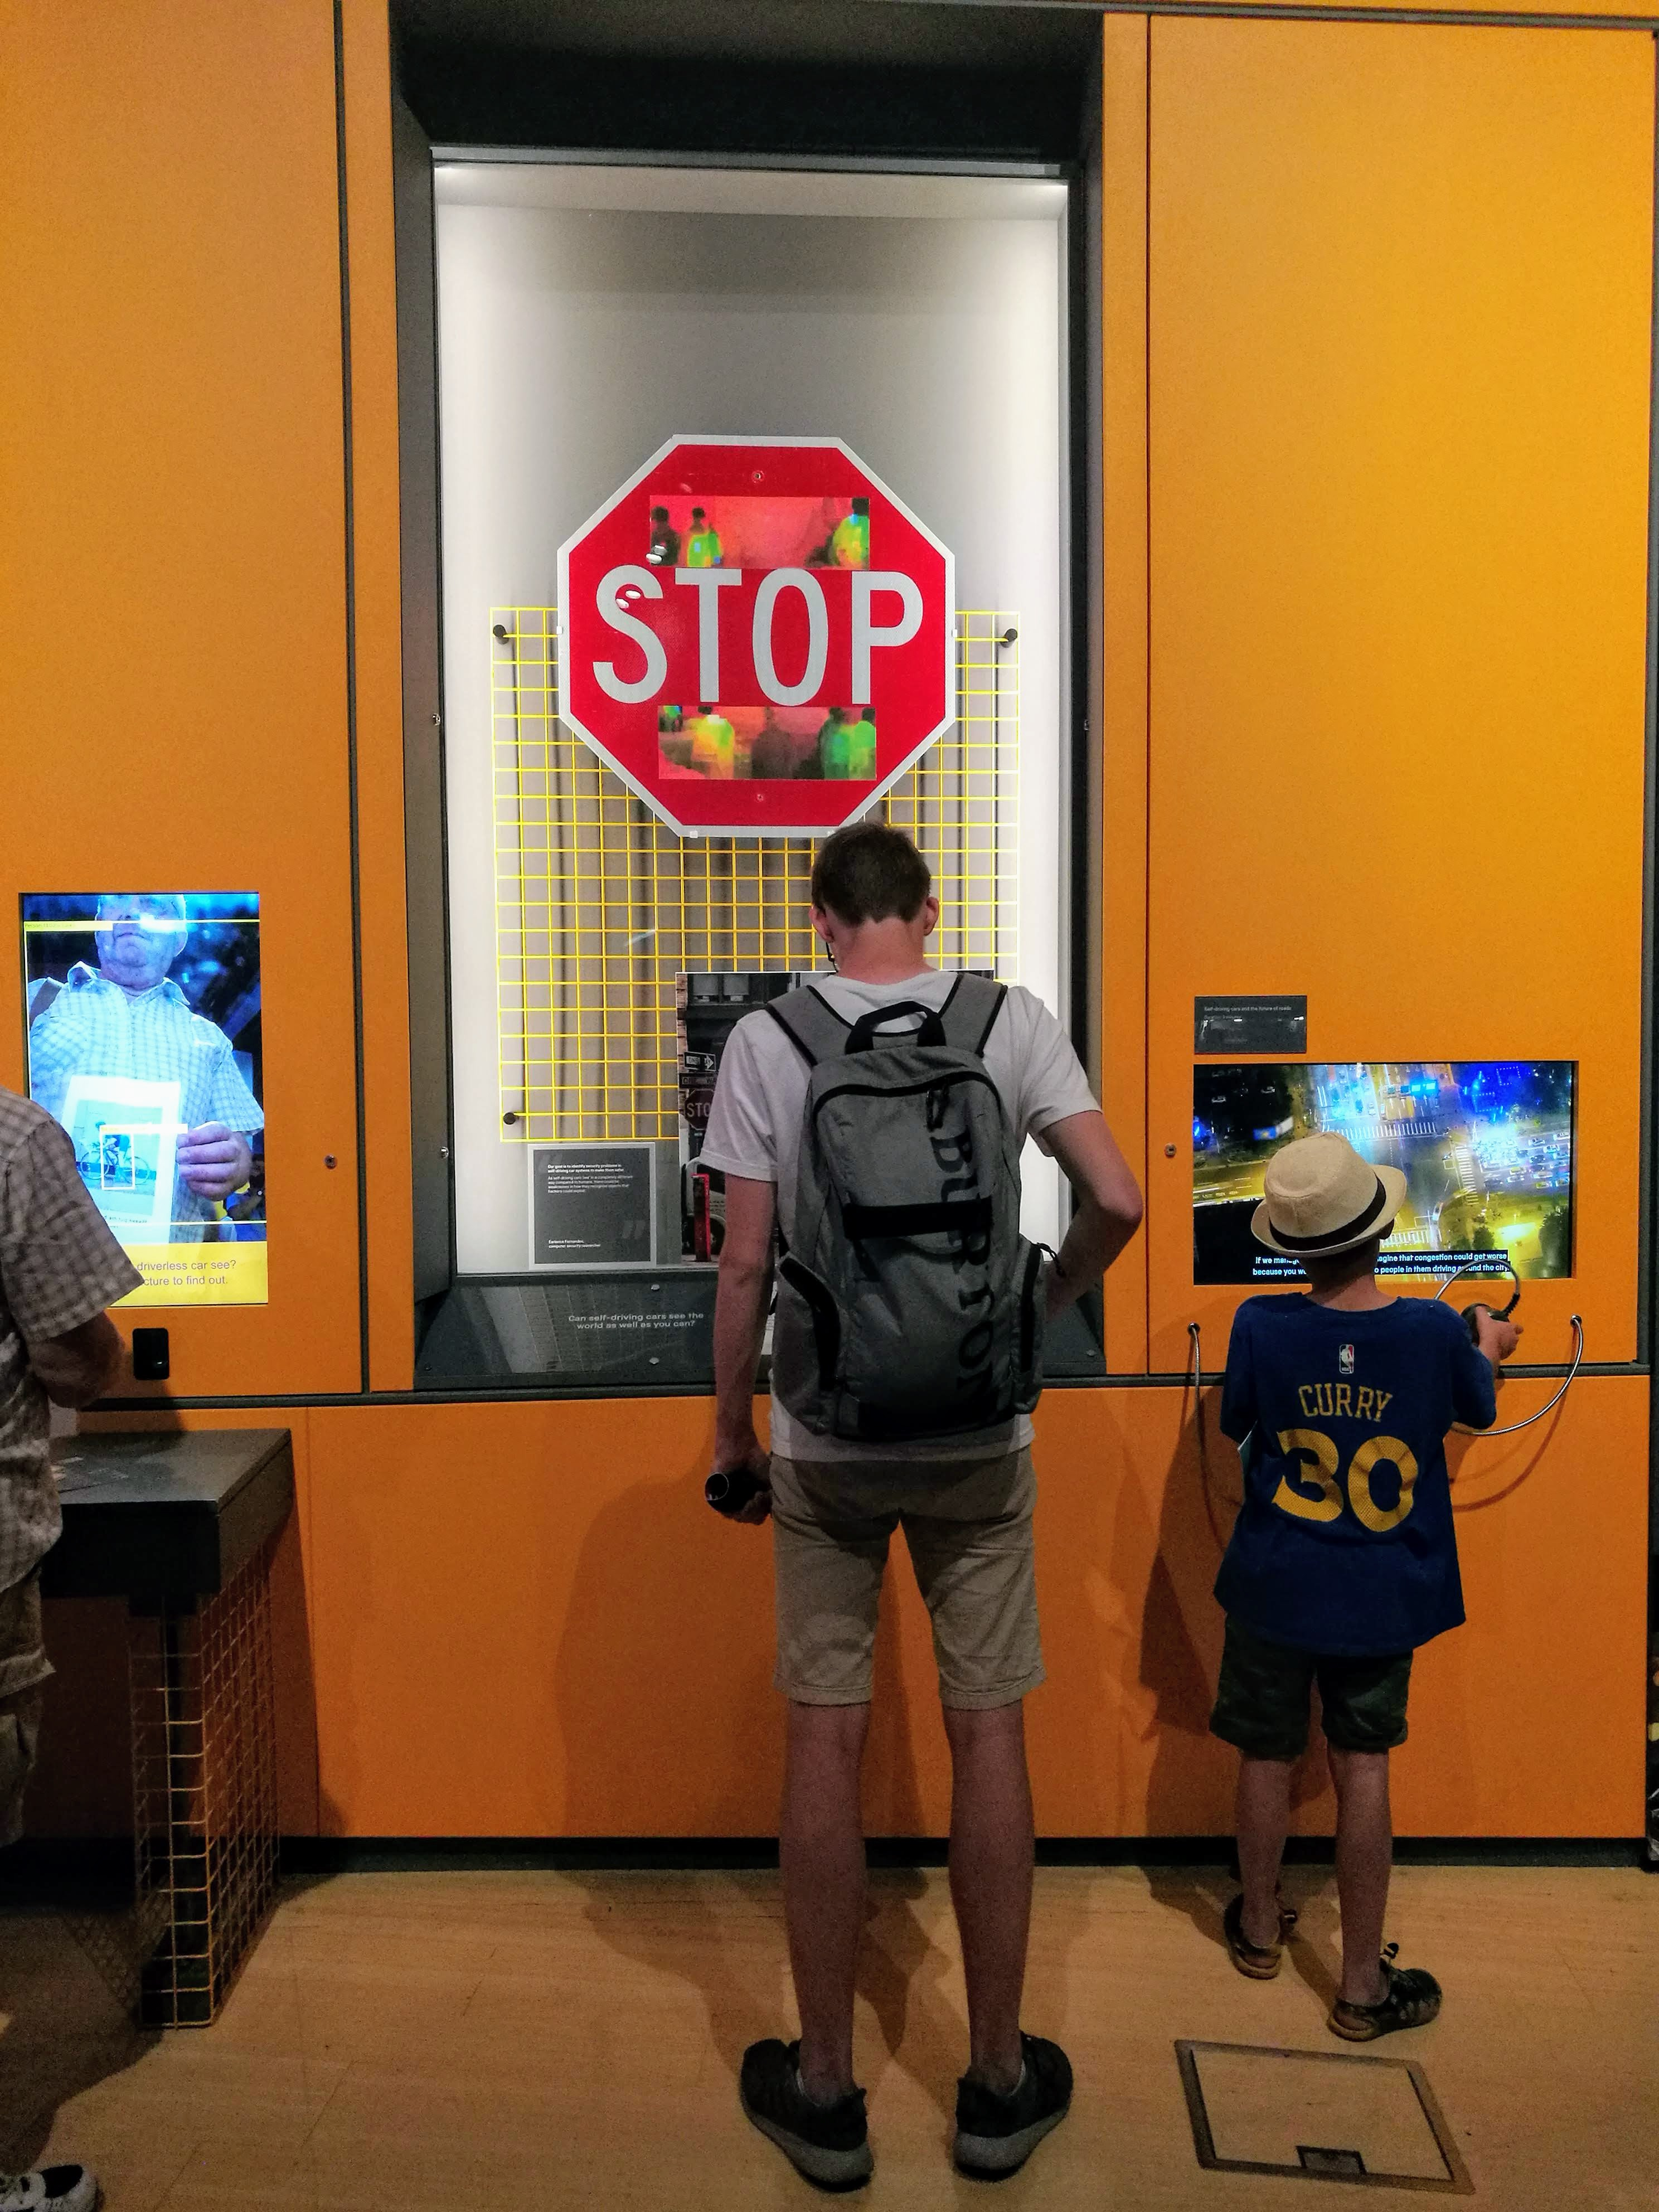 Visitors examine a display that shows a stop sign with stickers at the top and bottom of the sign.